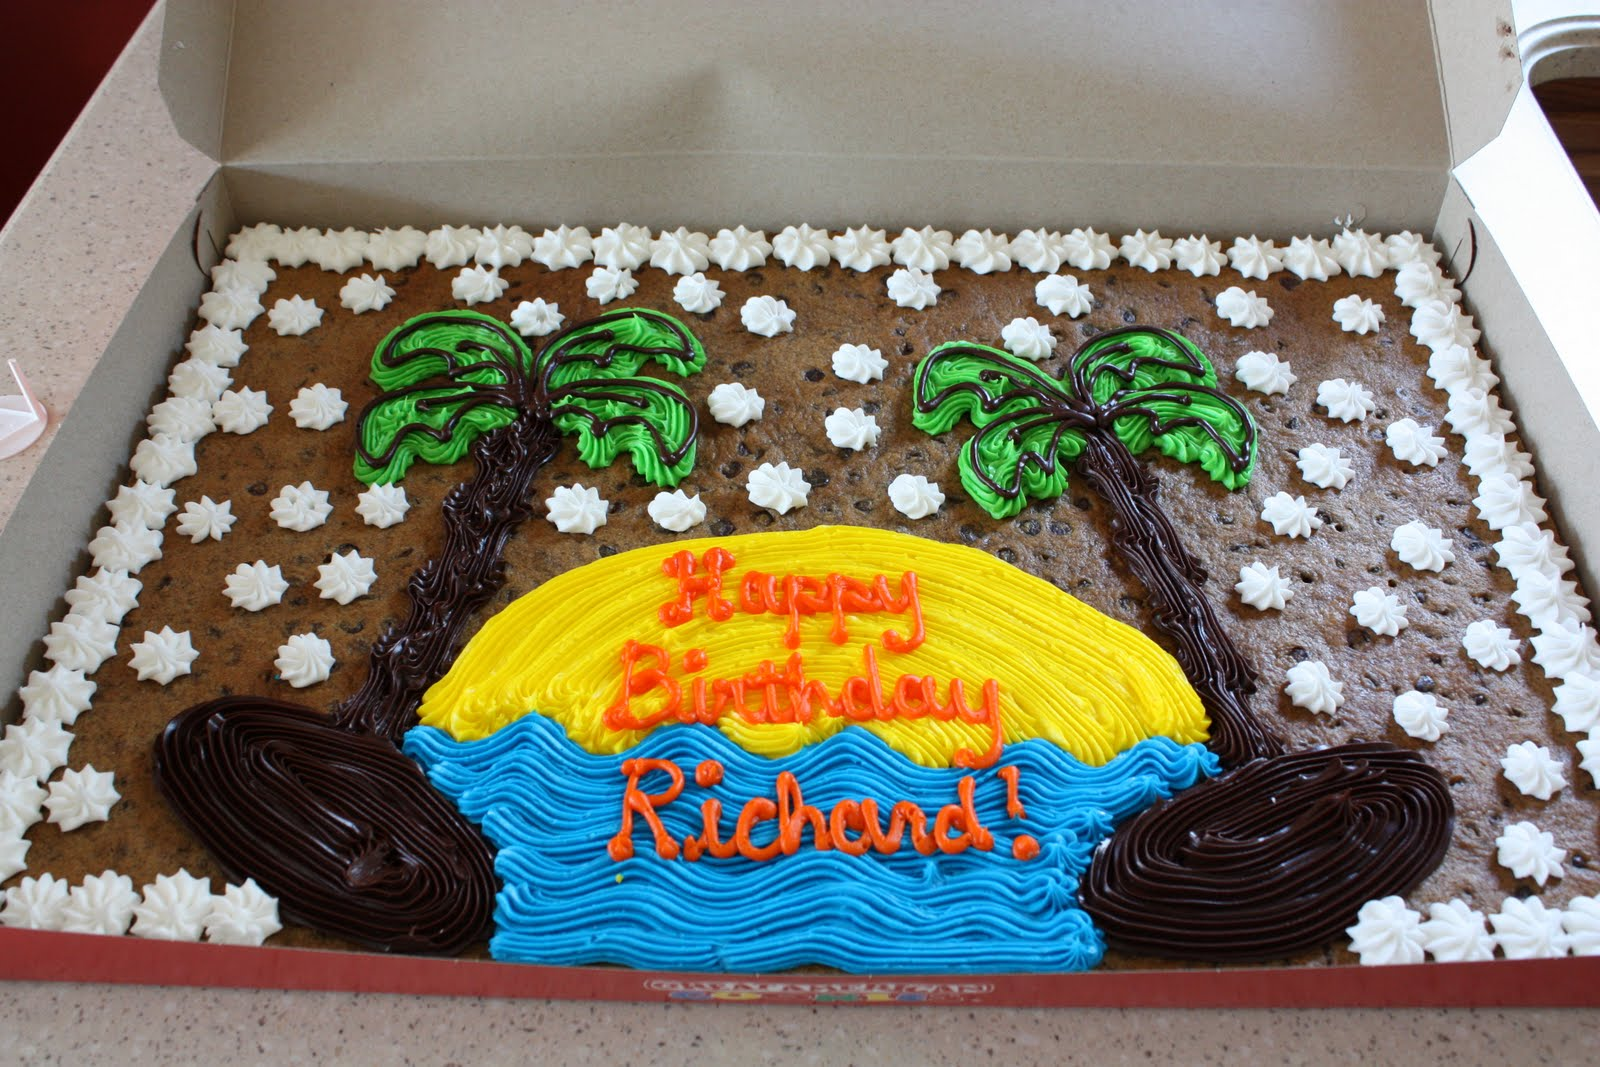 Giant Happy Birthday Cookie Cake Picture Custom The Mcfarland Family Blog 29th Richard